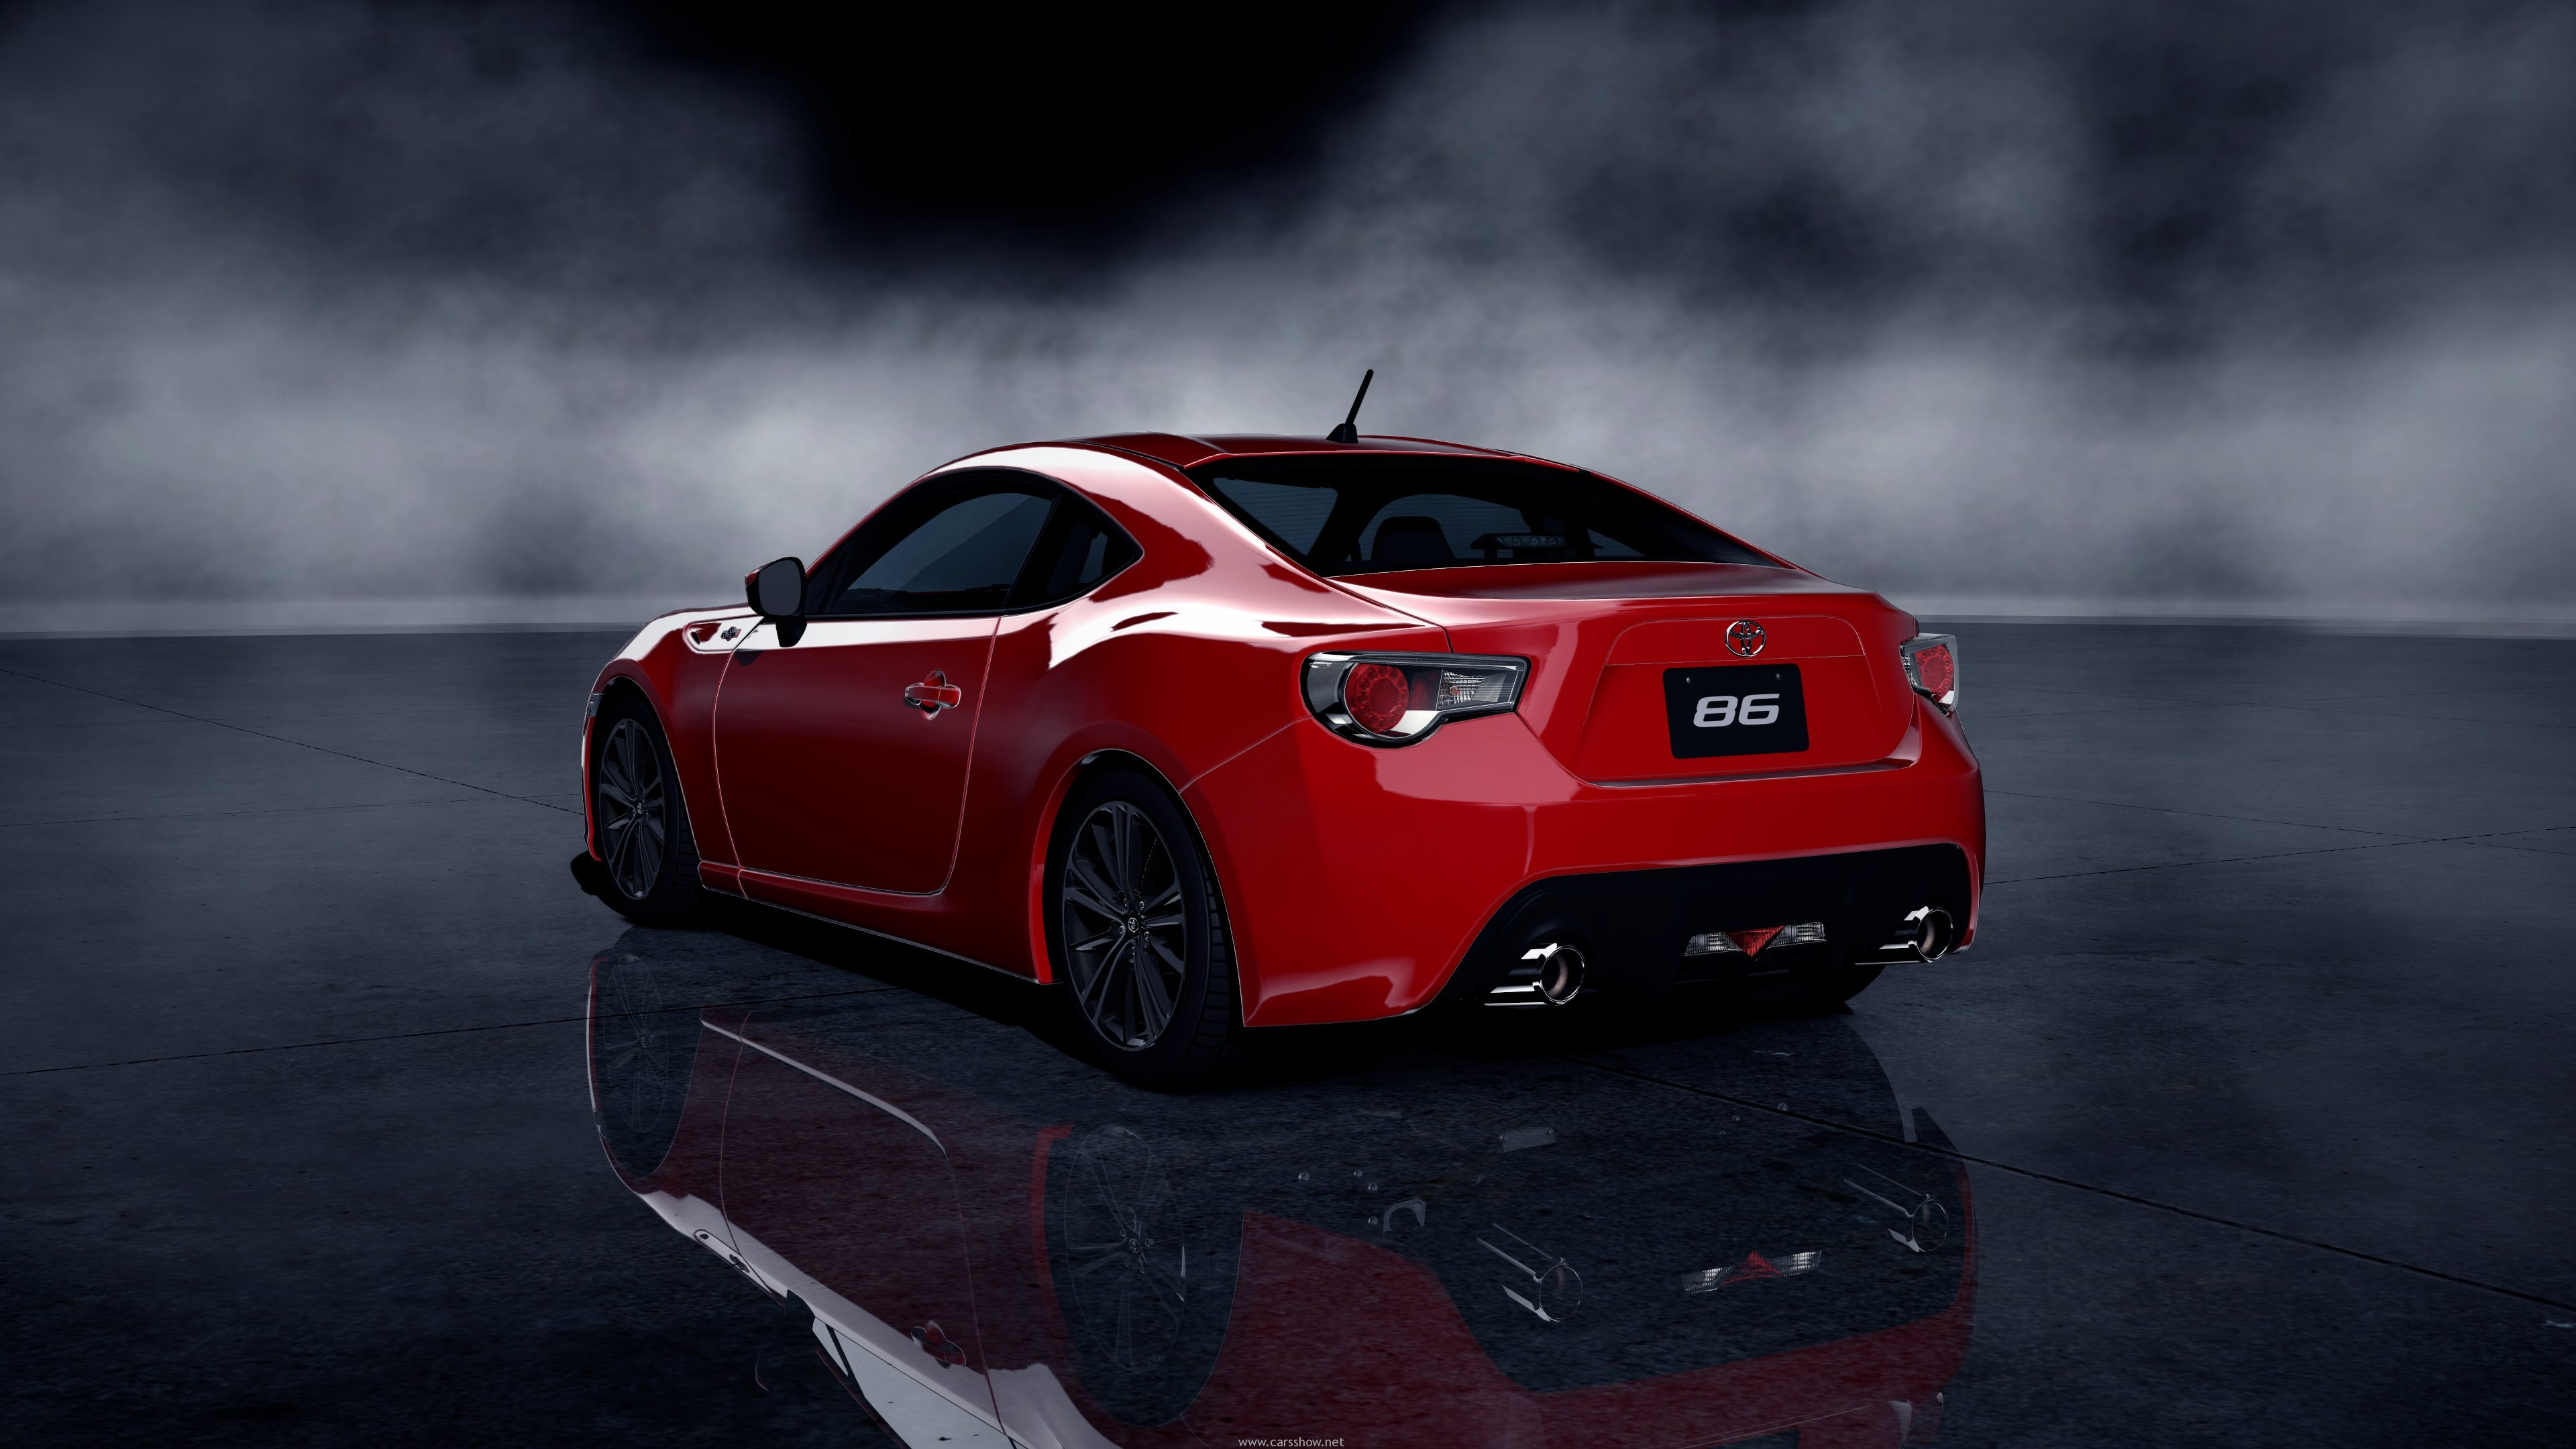 Toyota GT 86 Red wallpaper 3840x2160 17978 3840x2160